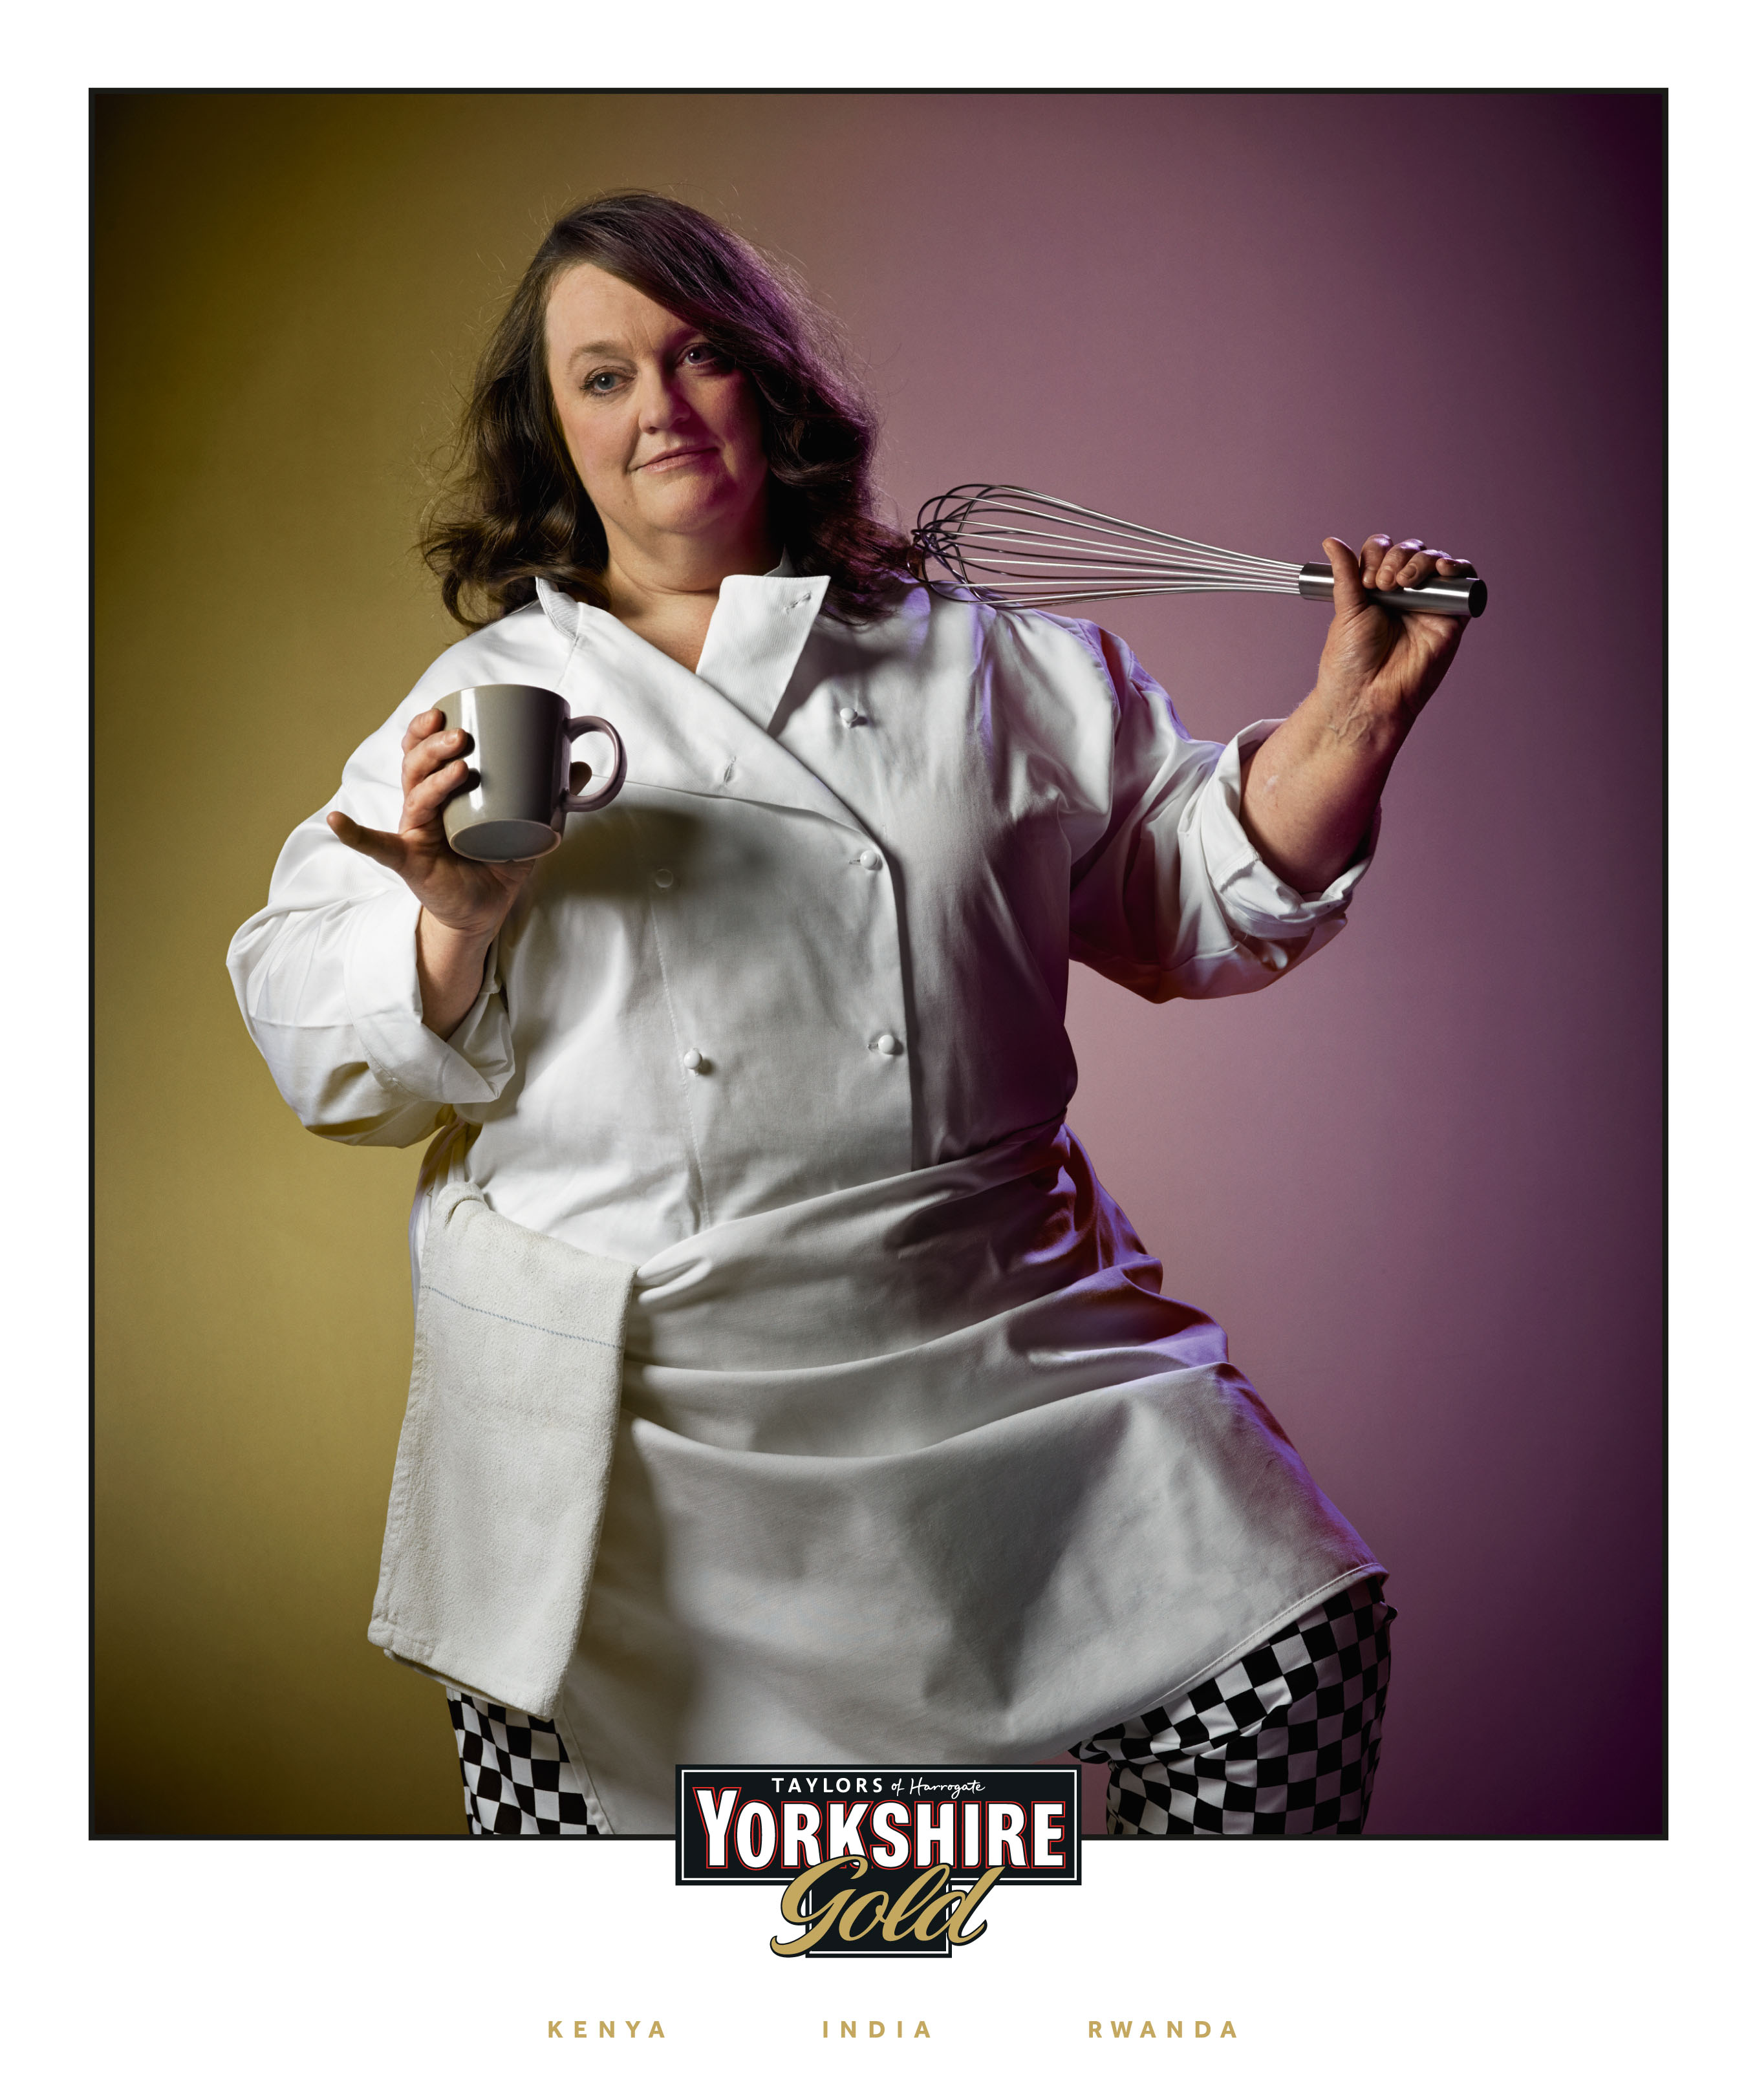 Yorkshire Gold: Chef